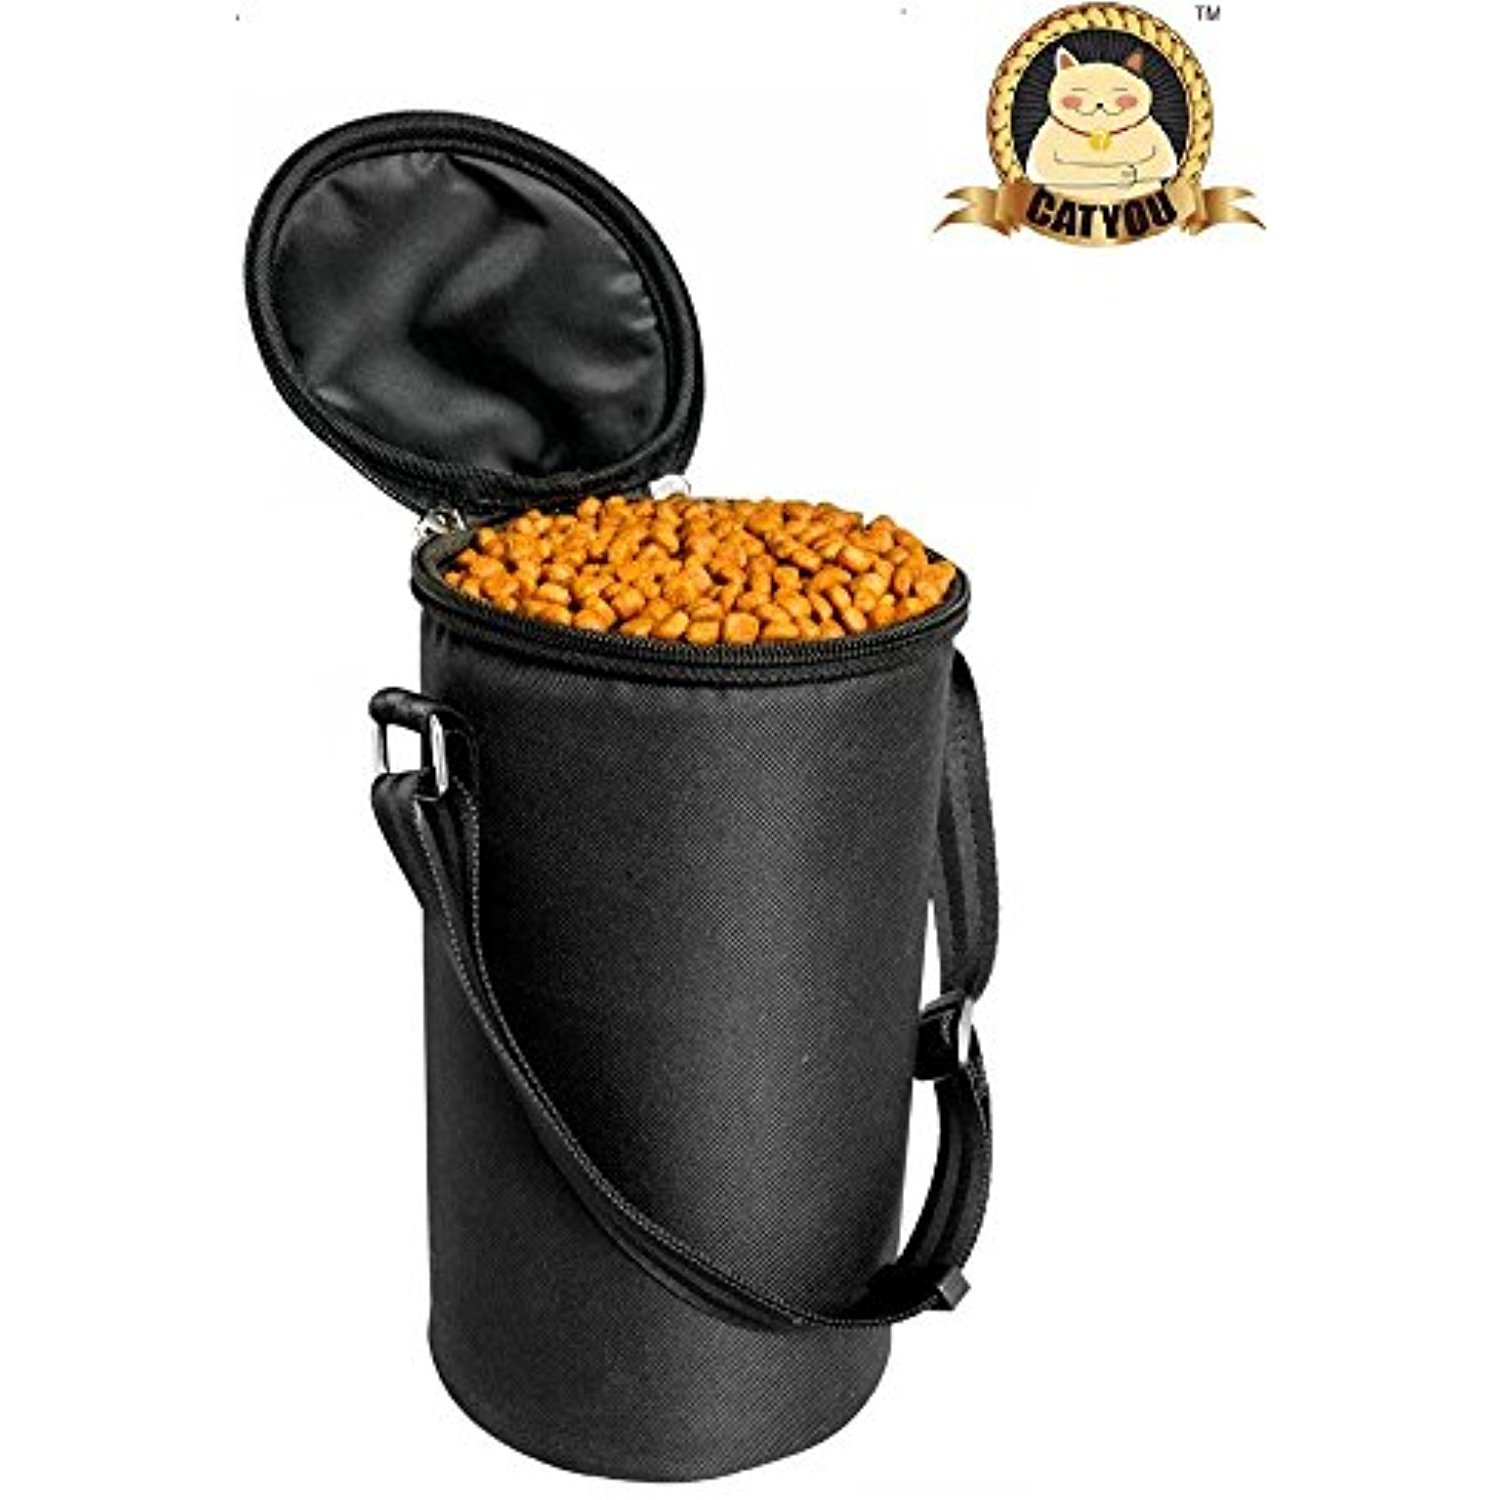 CatYou Pet Food Storage Waterproof Portable Outdoor Travel Dogs Cats Food Store Can -- For  sc 1 st  Pinterest & CatYou Pet Food Storage Waterproof Portable Outdoor Travel Dogs Cats ...